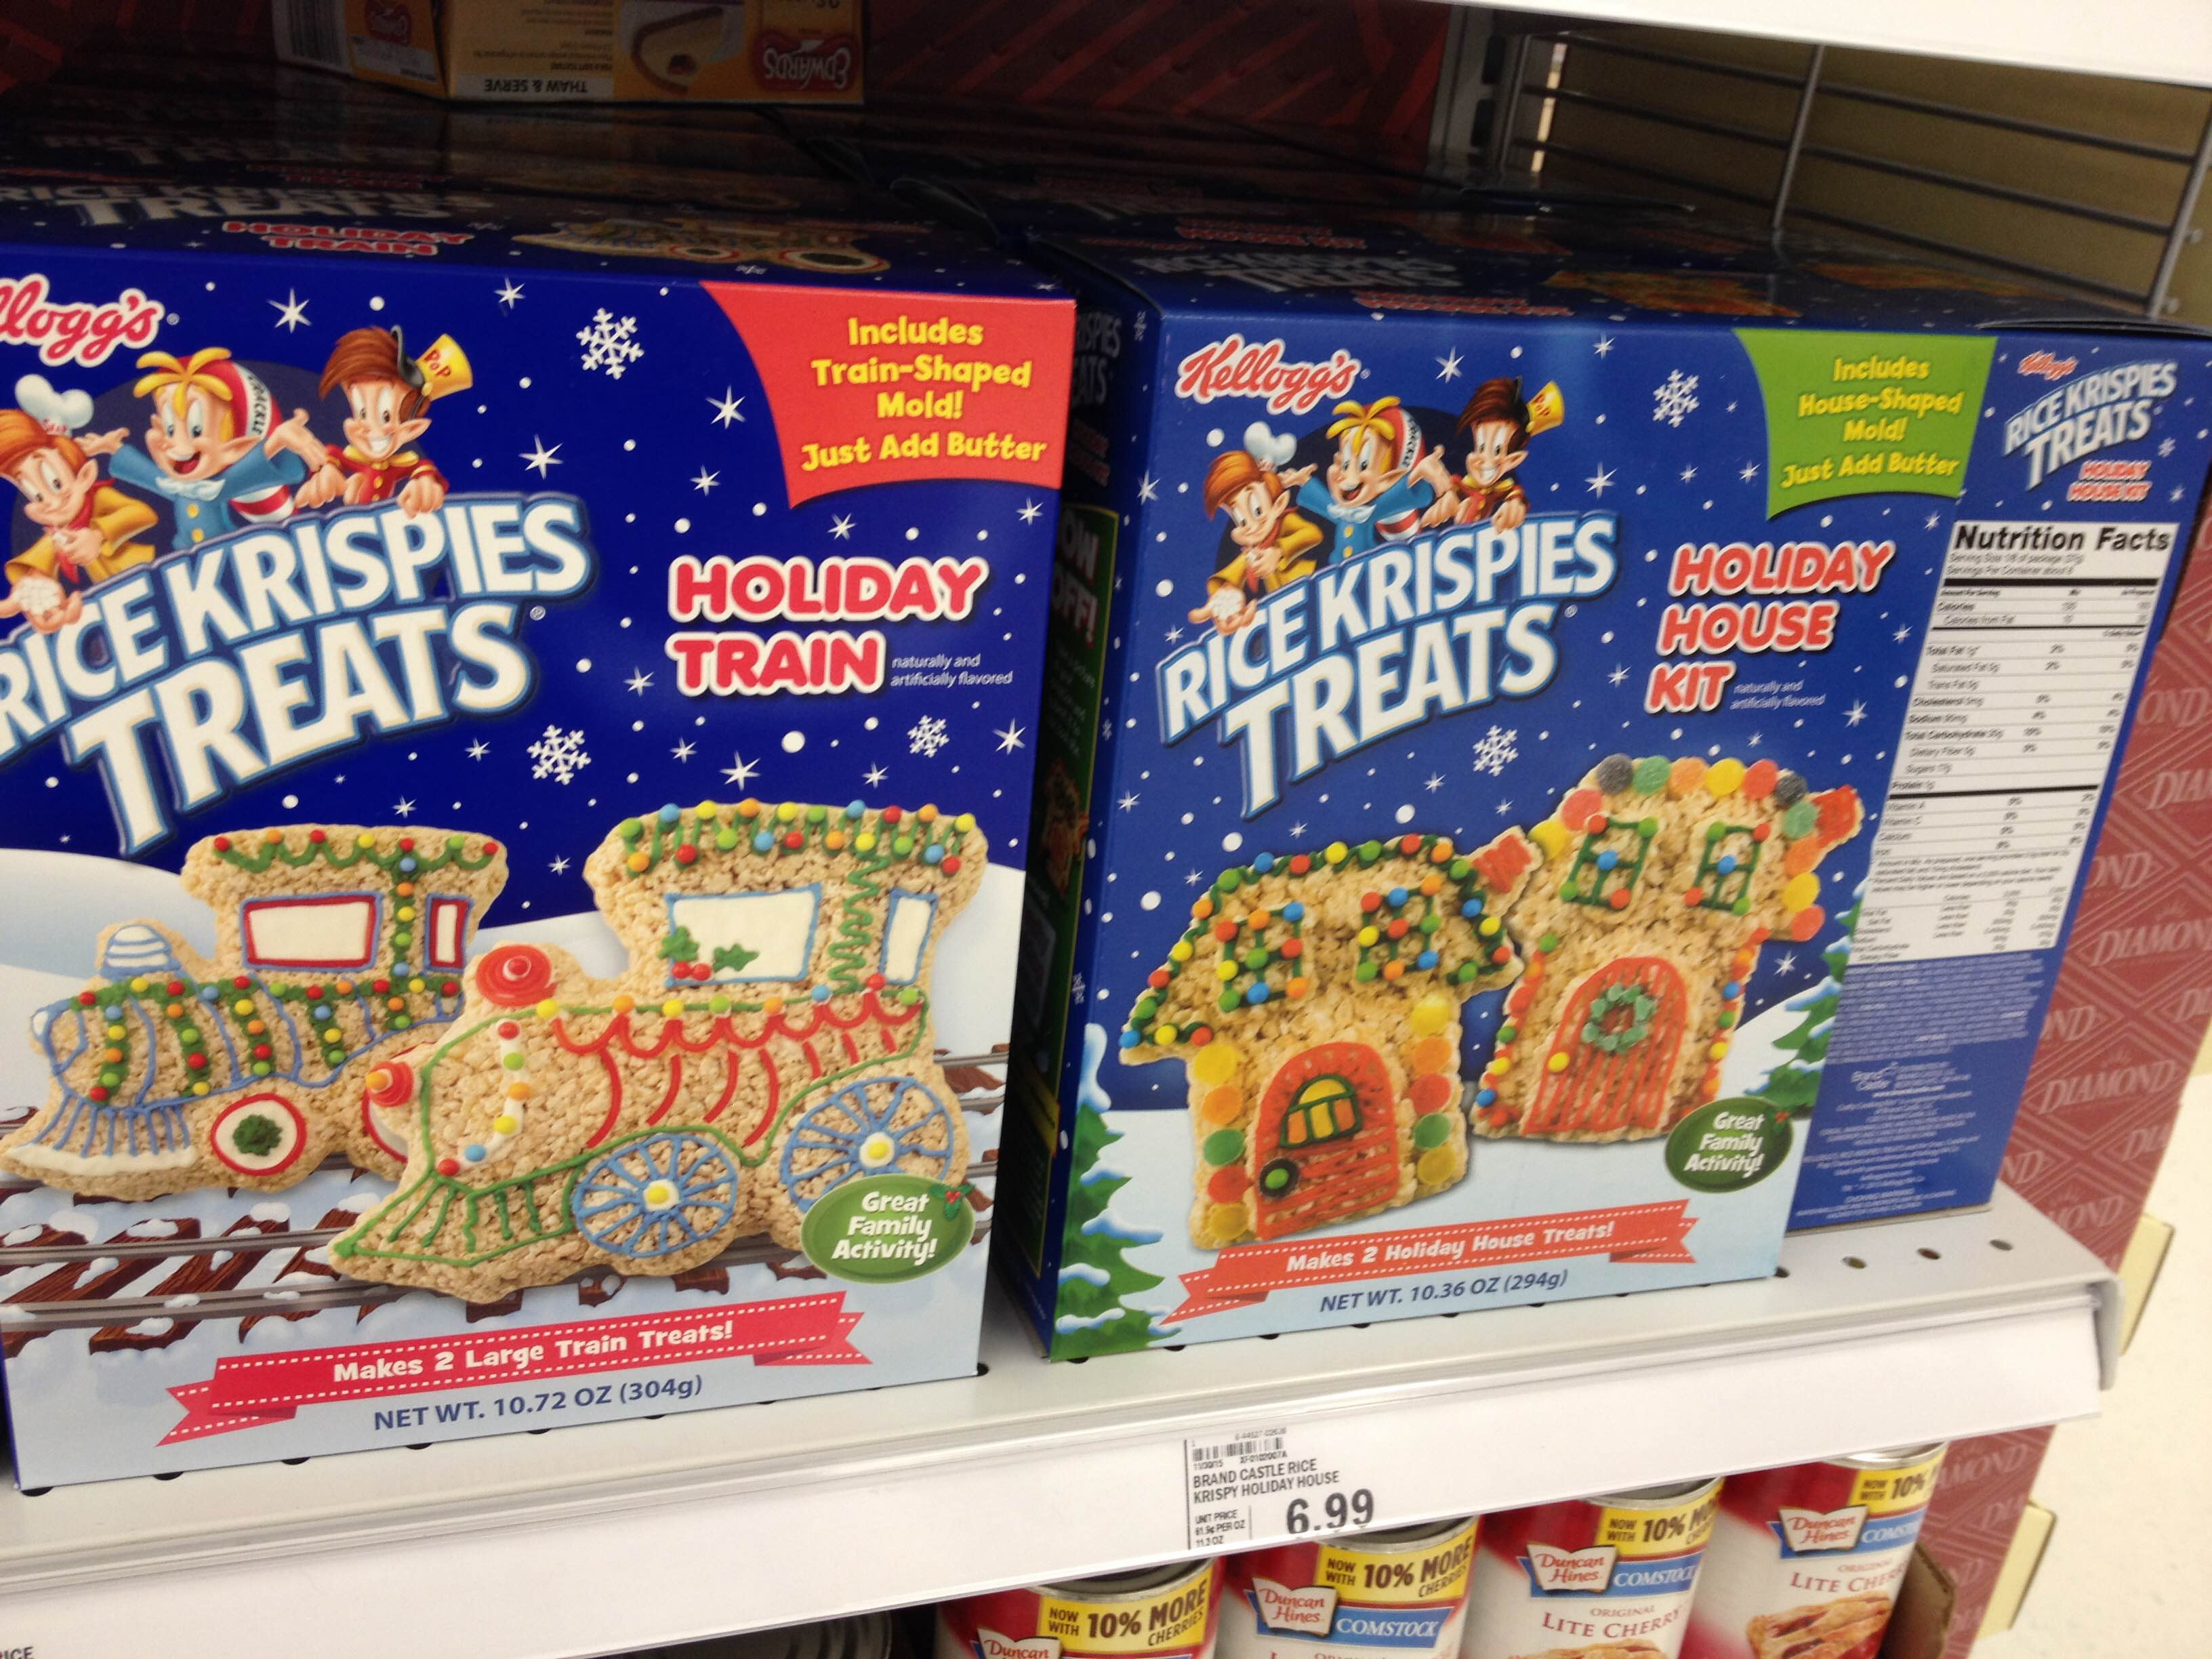 spooned spotted rice krispies treats holiday train and holiday house kits